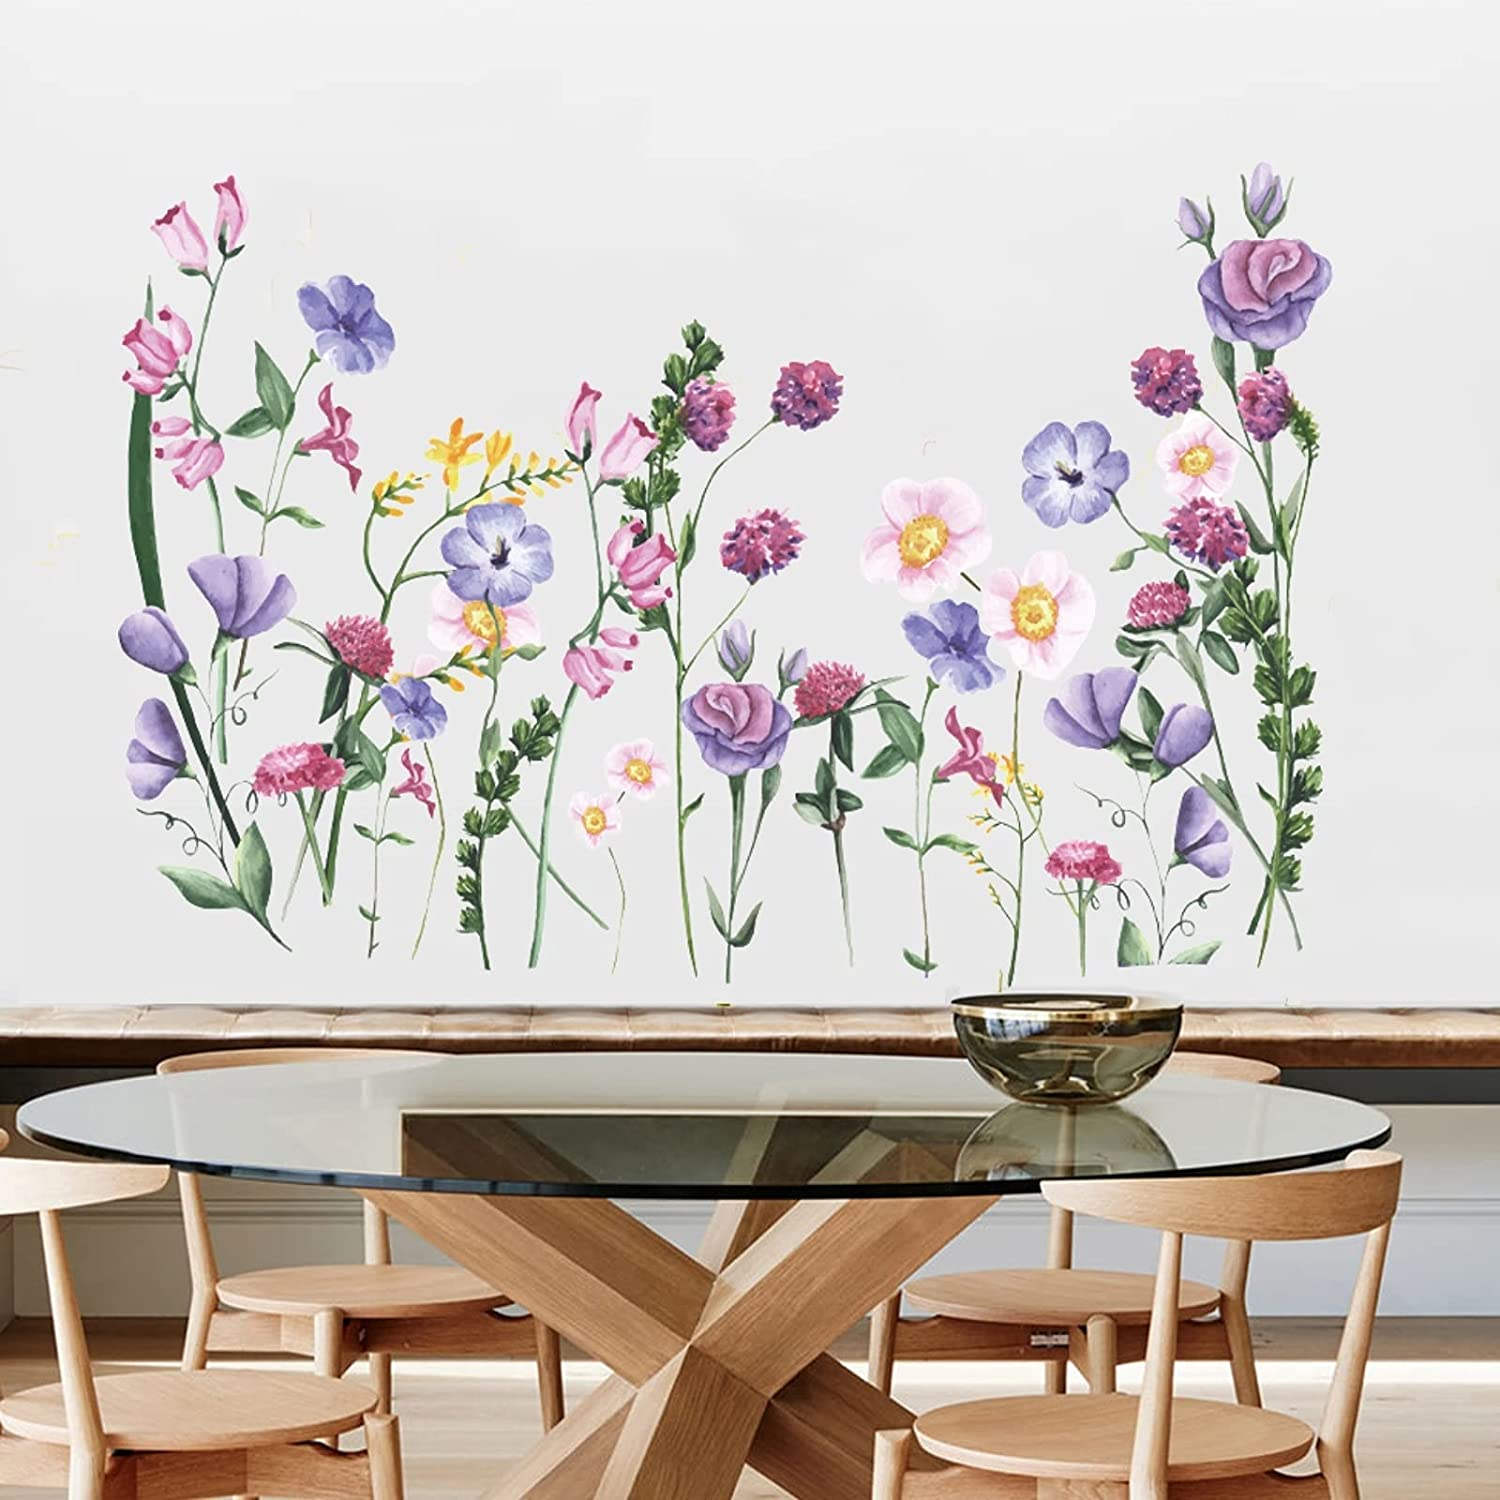 Colorful Flowers Vine Wall Stickers Spring Garden Floral Wall Decals Removable DIY Peel and Stick Art Murals for Kids Room Nursery Classroom Kitchen Living Room Bedroom Bathroom Decor (Colorful)